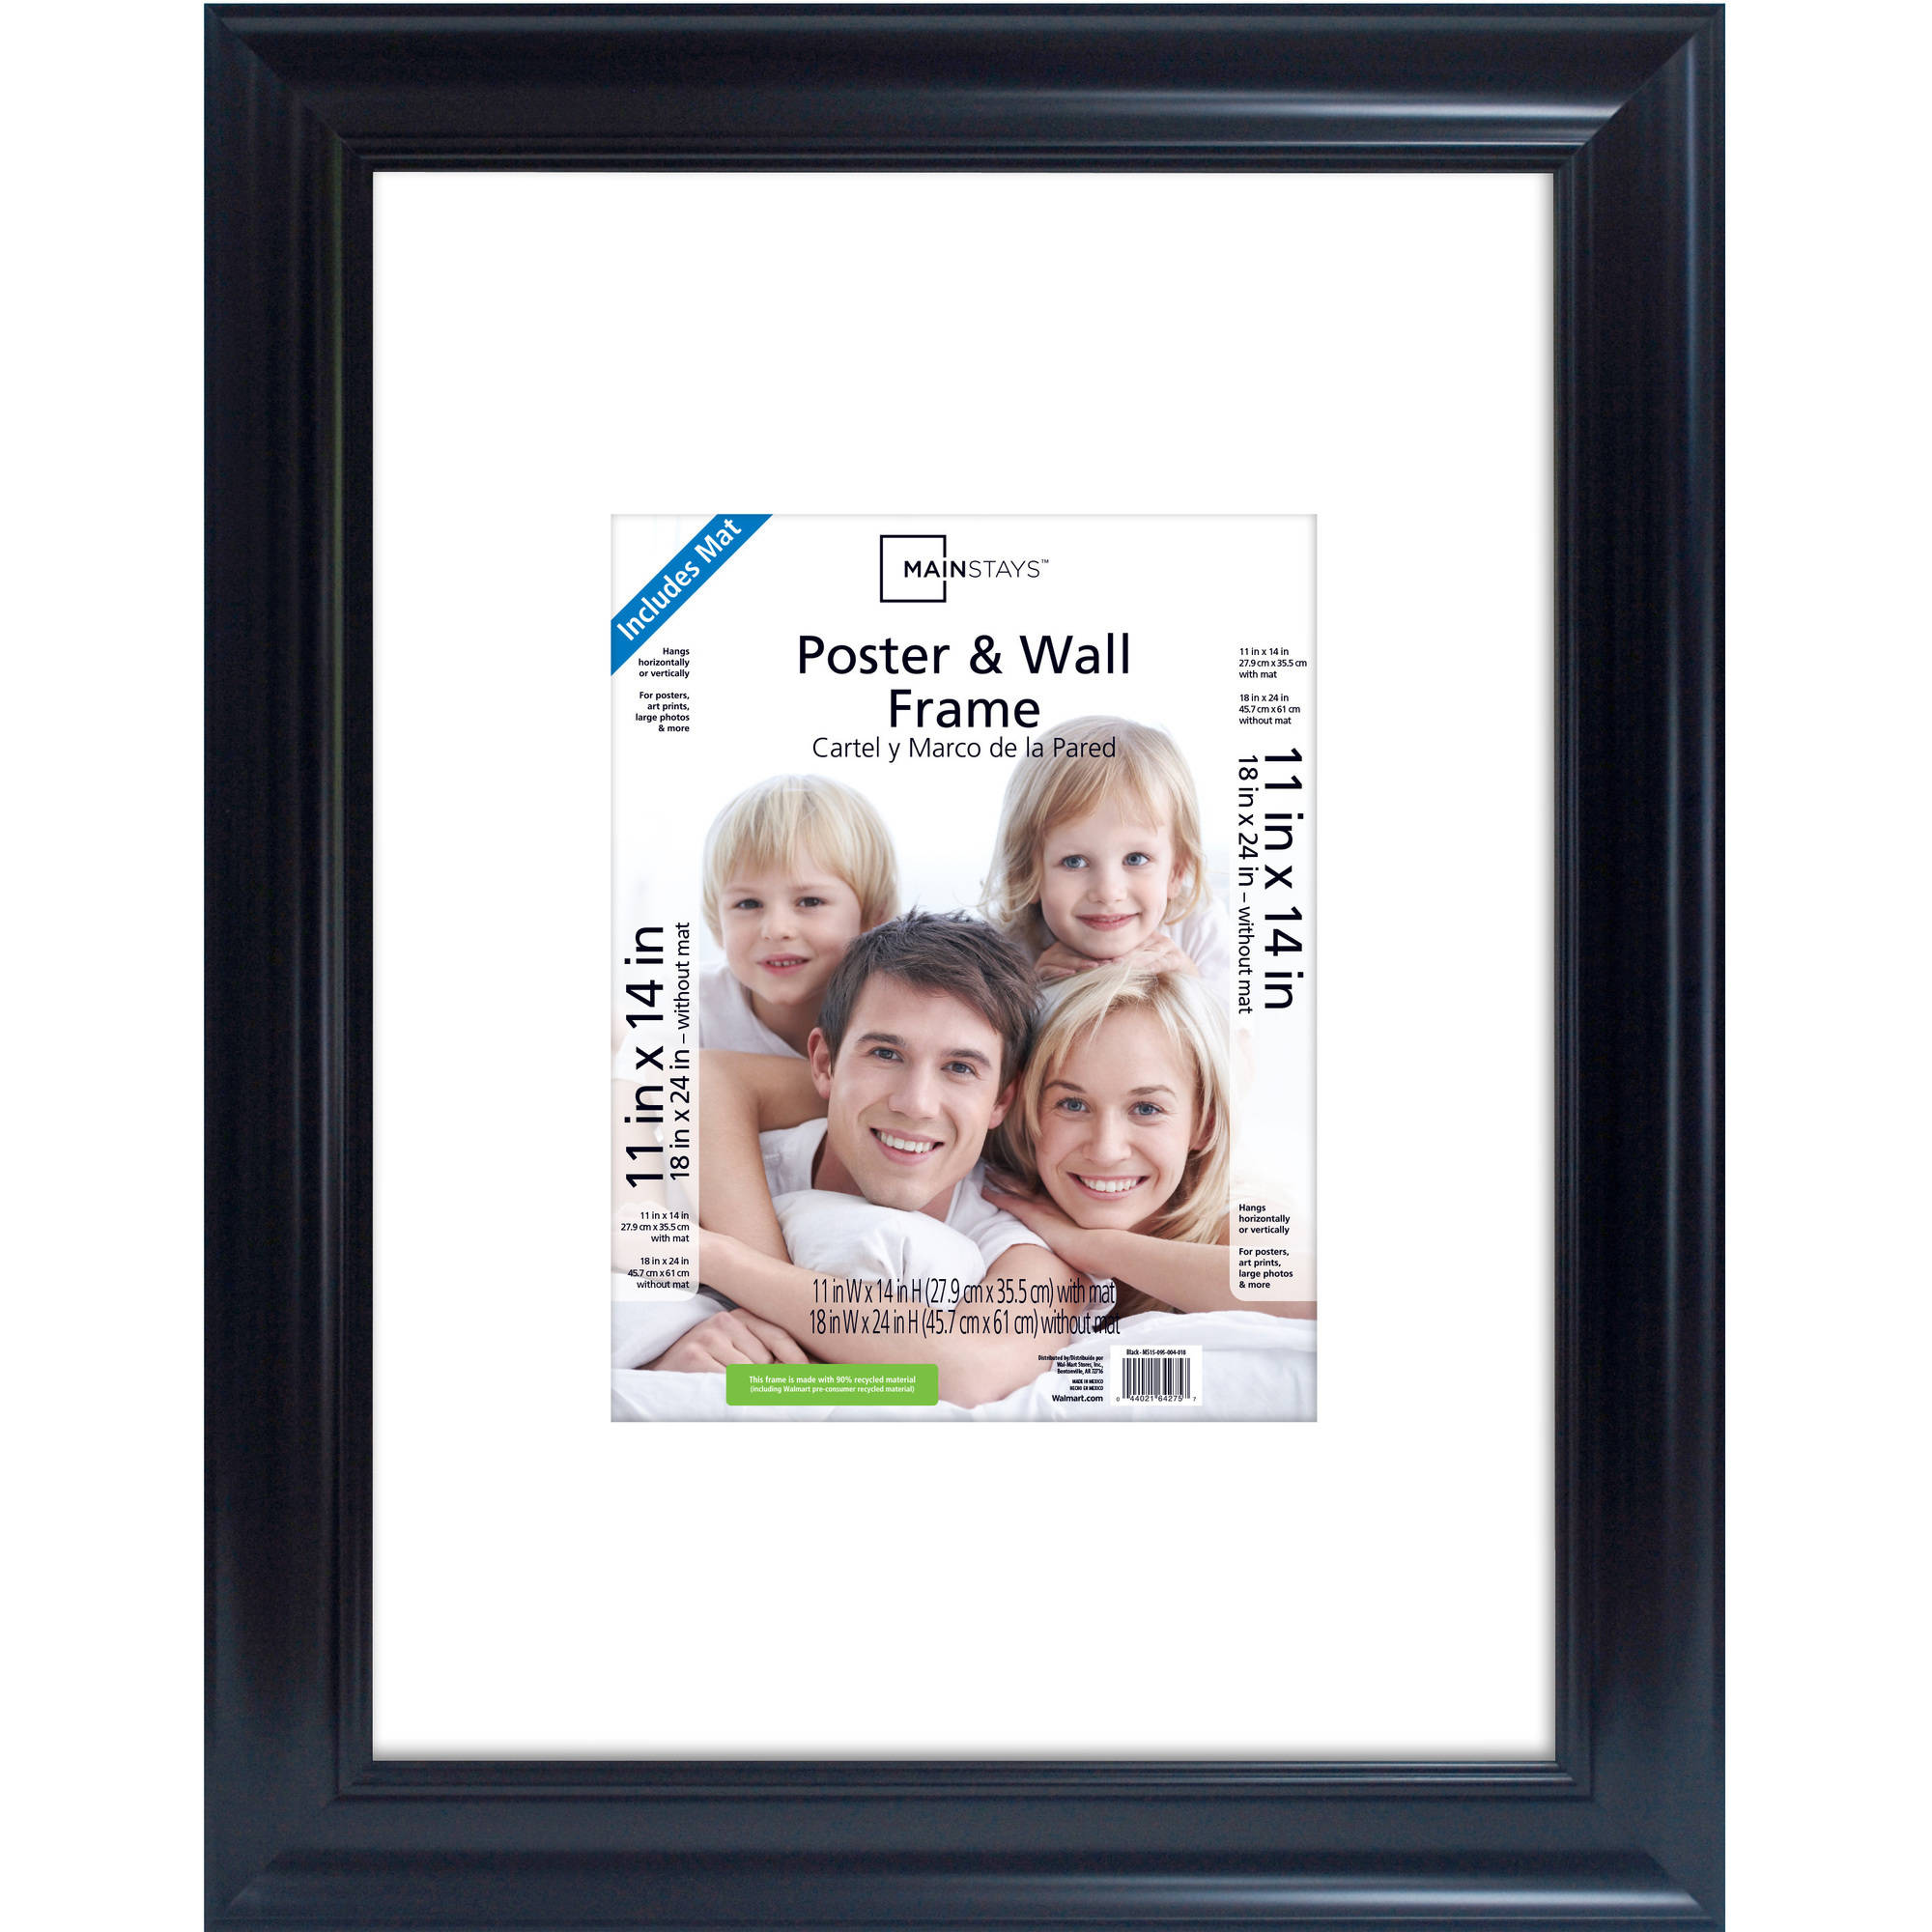 "Mainstays 18"" x 24"" Wide Gallery Poster and Picture Frame, Black Finish by MCS Industries, Inc."